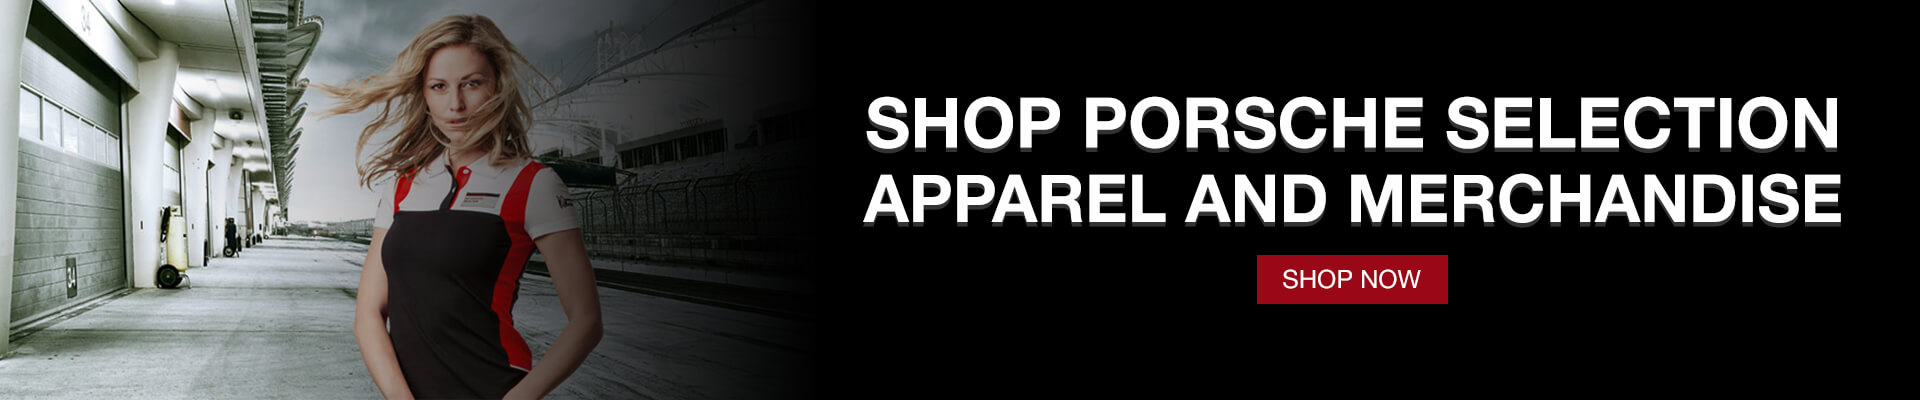 Porsche Apparel and Merchandise